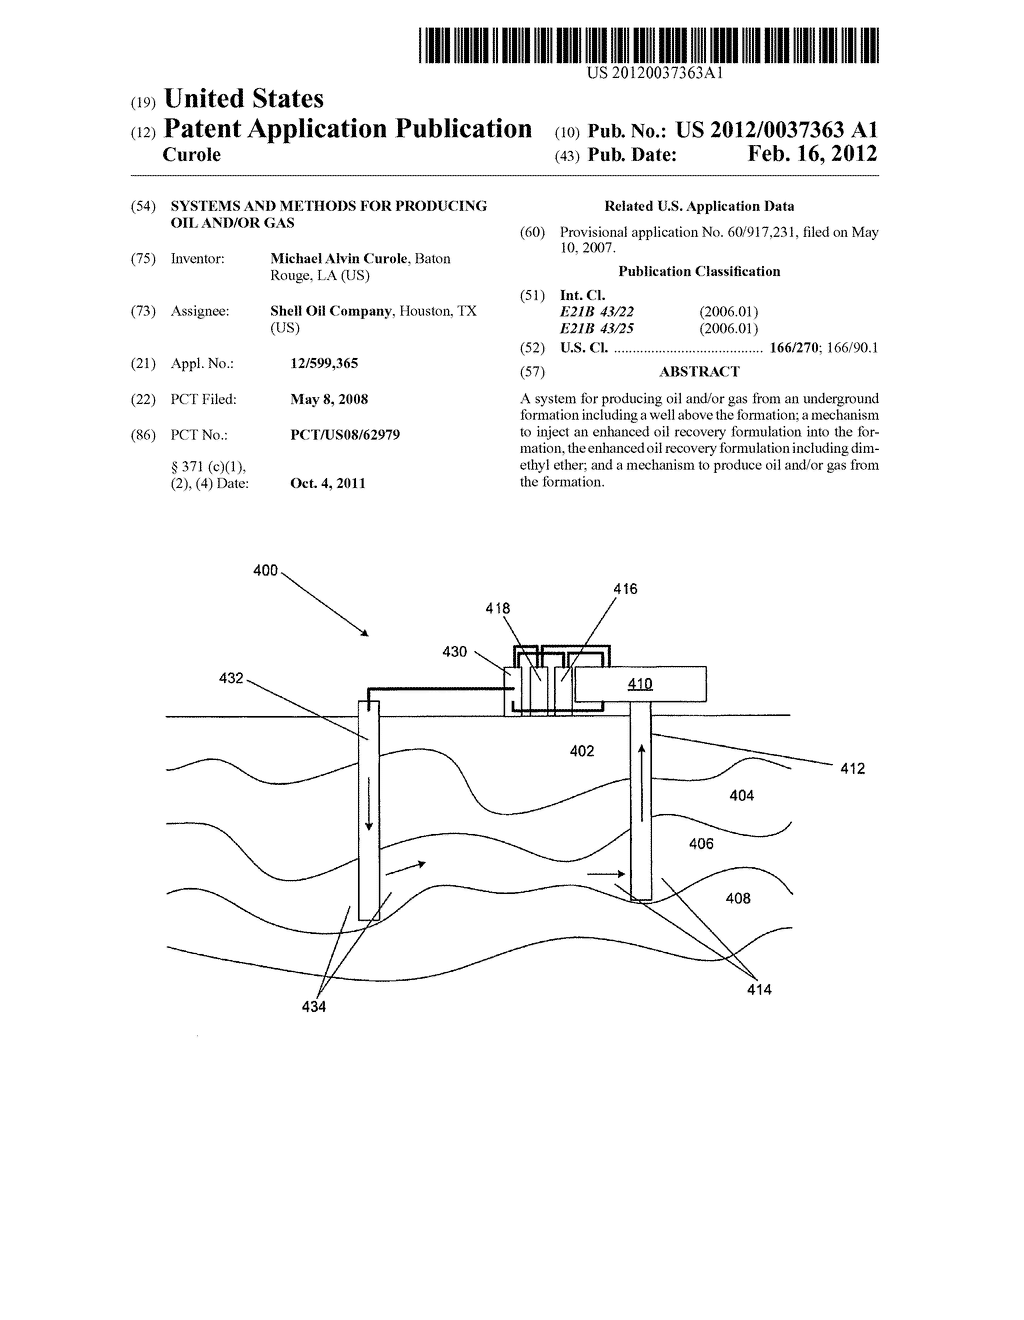 SYSTEMS AND METHODS FOR PRODUCING OIL AND/OR GAS - diagram, schematic, and image 01